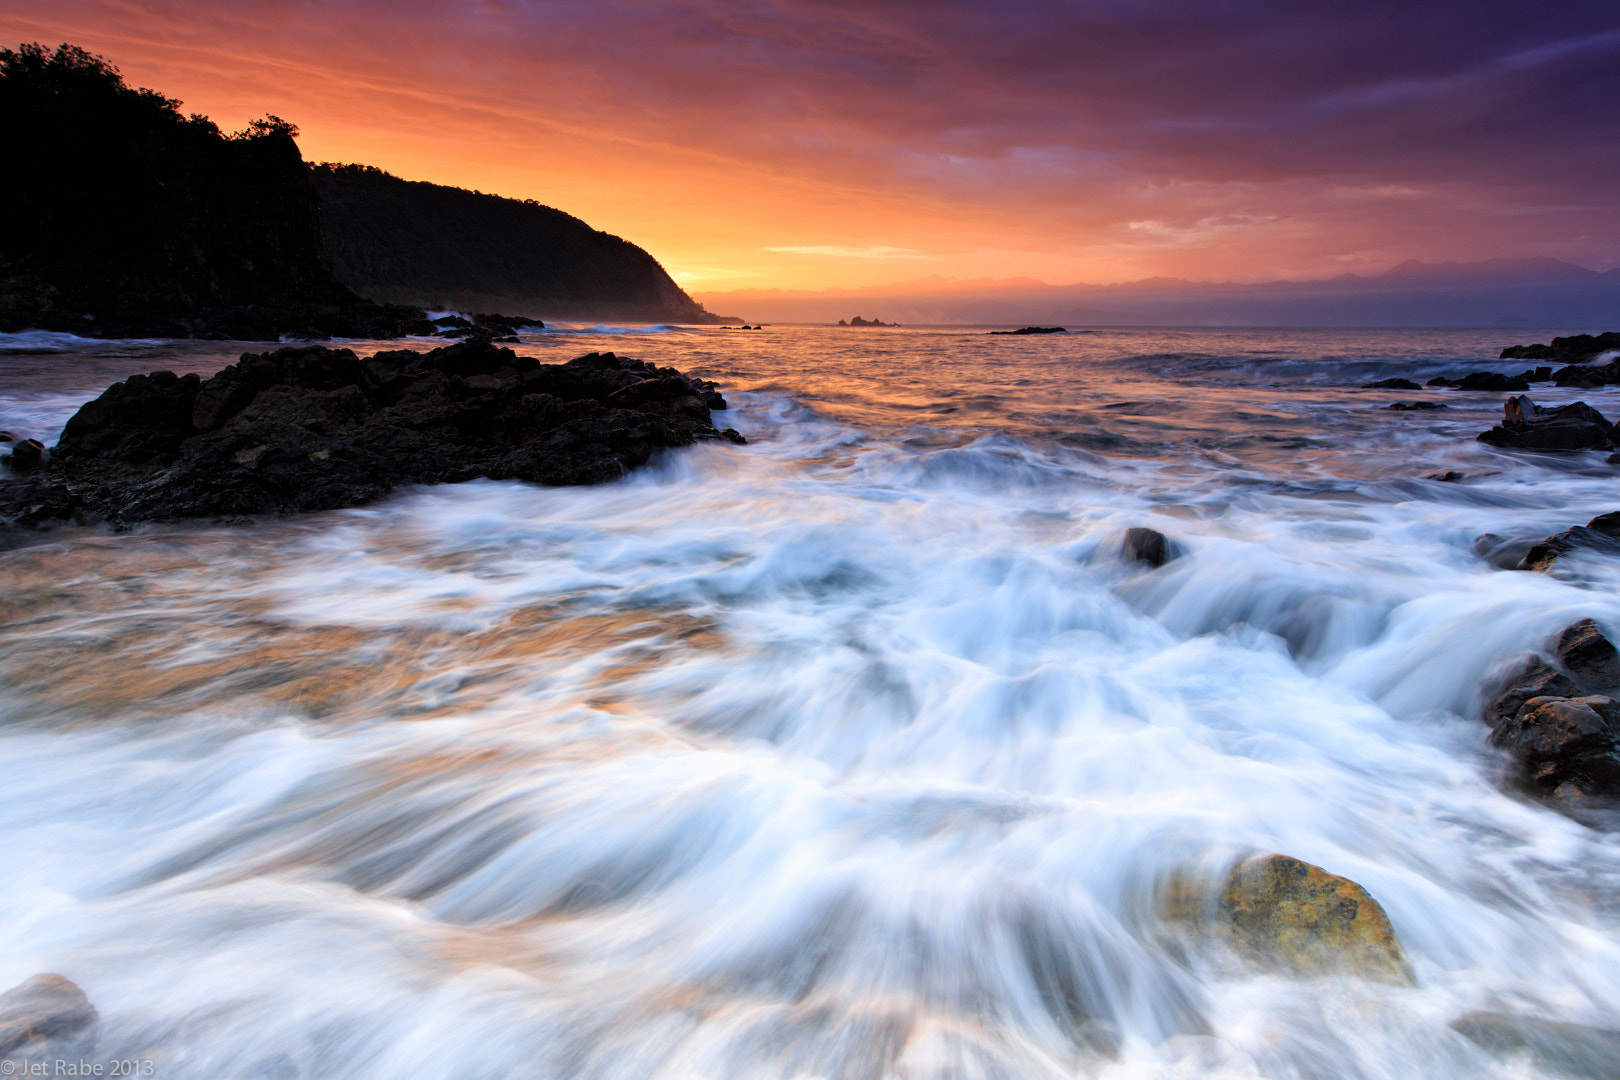 Photograph Dynamic Sunset by Jet Rabe on 500px